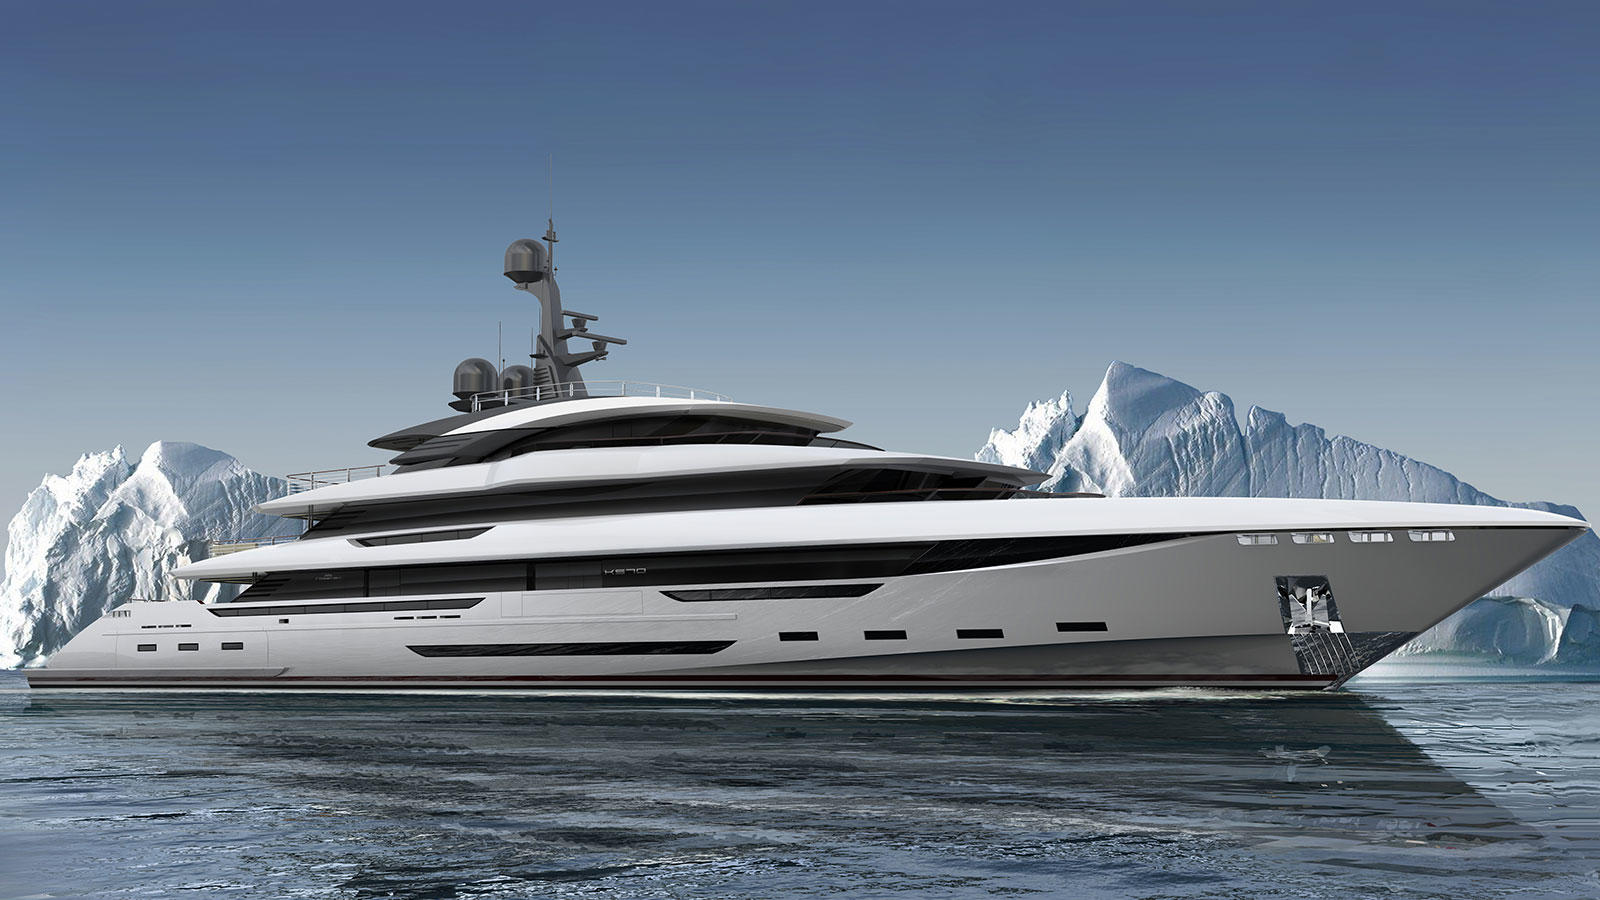 70m Rossinavi superyacht King Shark sold - Yacht Harbour